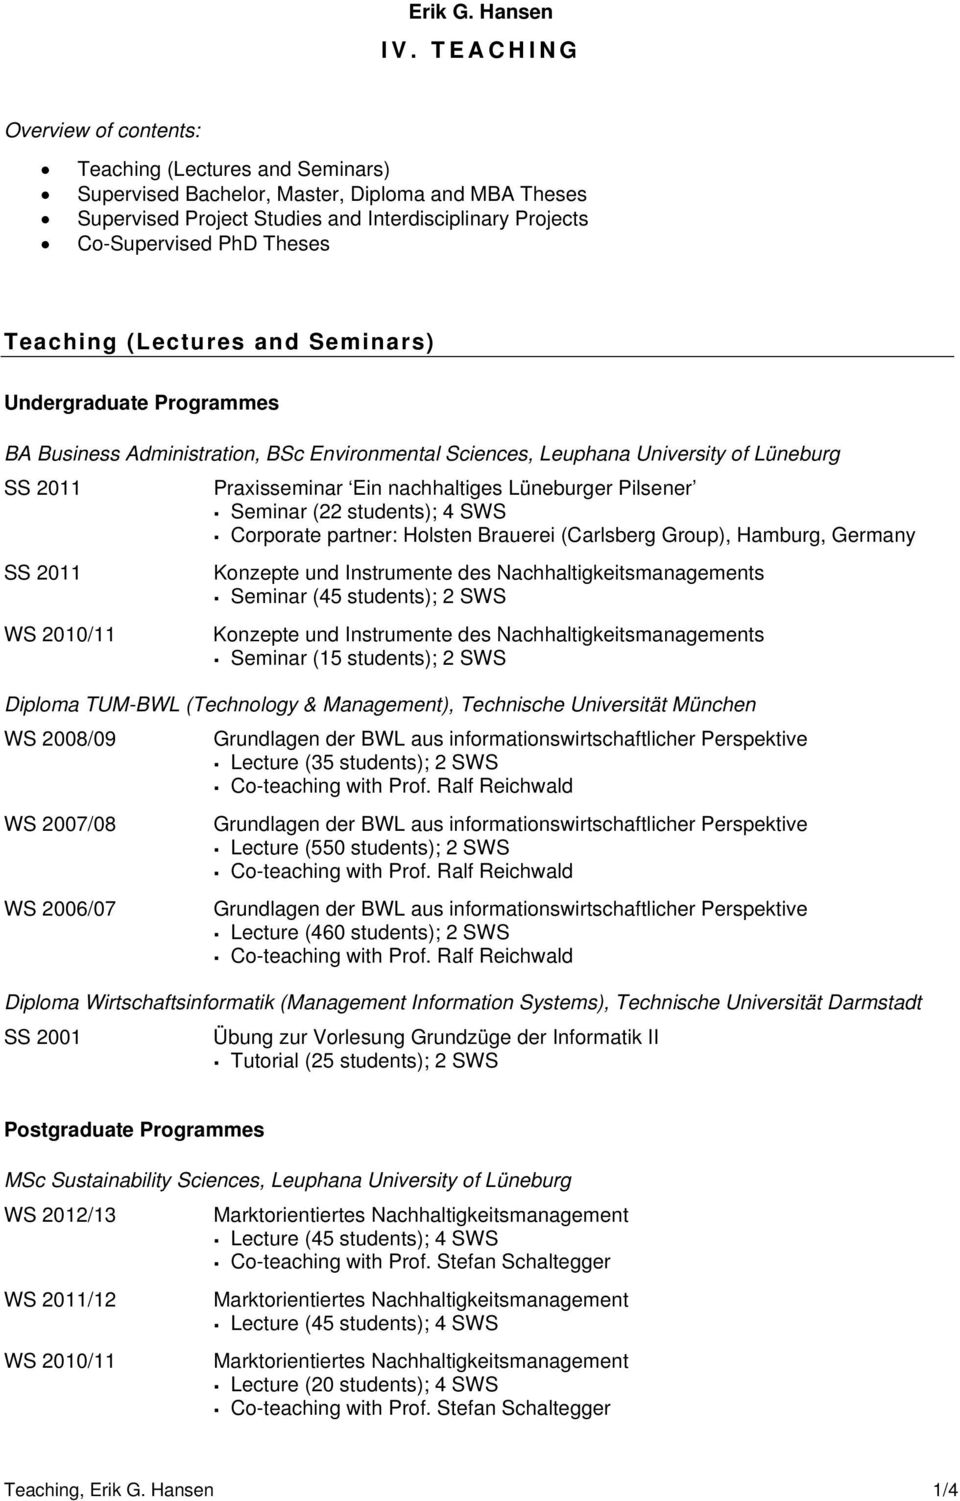 Teaching (Lectures and Seminars) Undergraduate Programmes BA Business Administration, BSc Environmental Sciences, Leuphana University of Lüneburg SS 2011 Praxisseminar Ein nachhaltiges Lüneburger